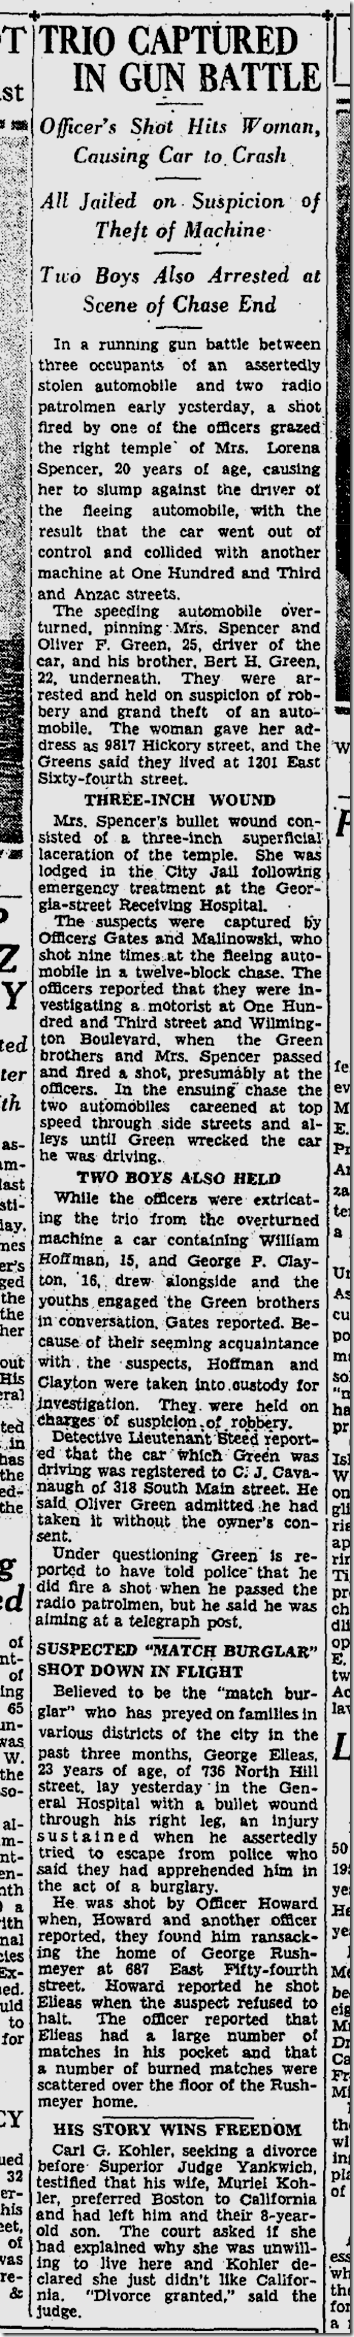 Sept. 25, 1933, Police Involved Shooting